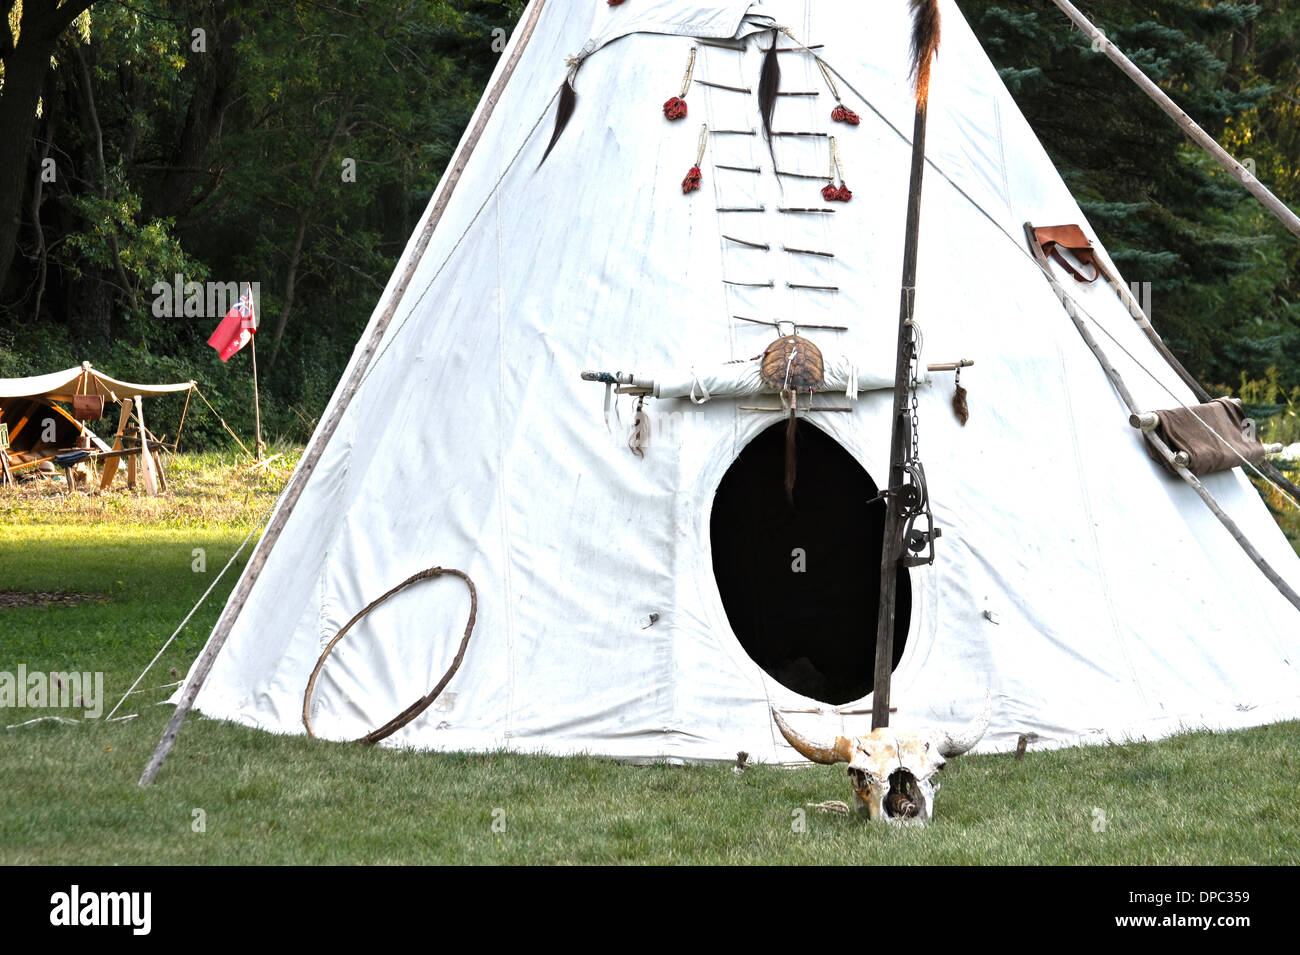 Native American Indian tipi - Stock Image